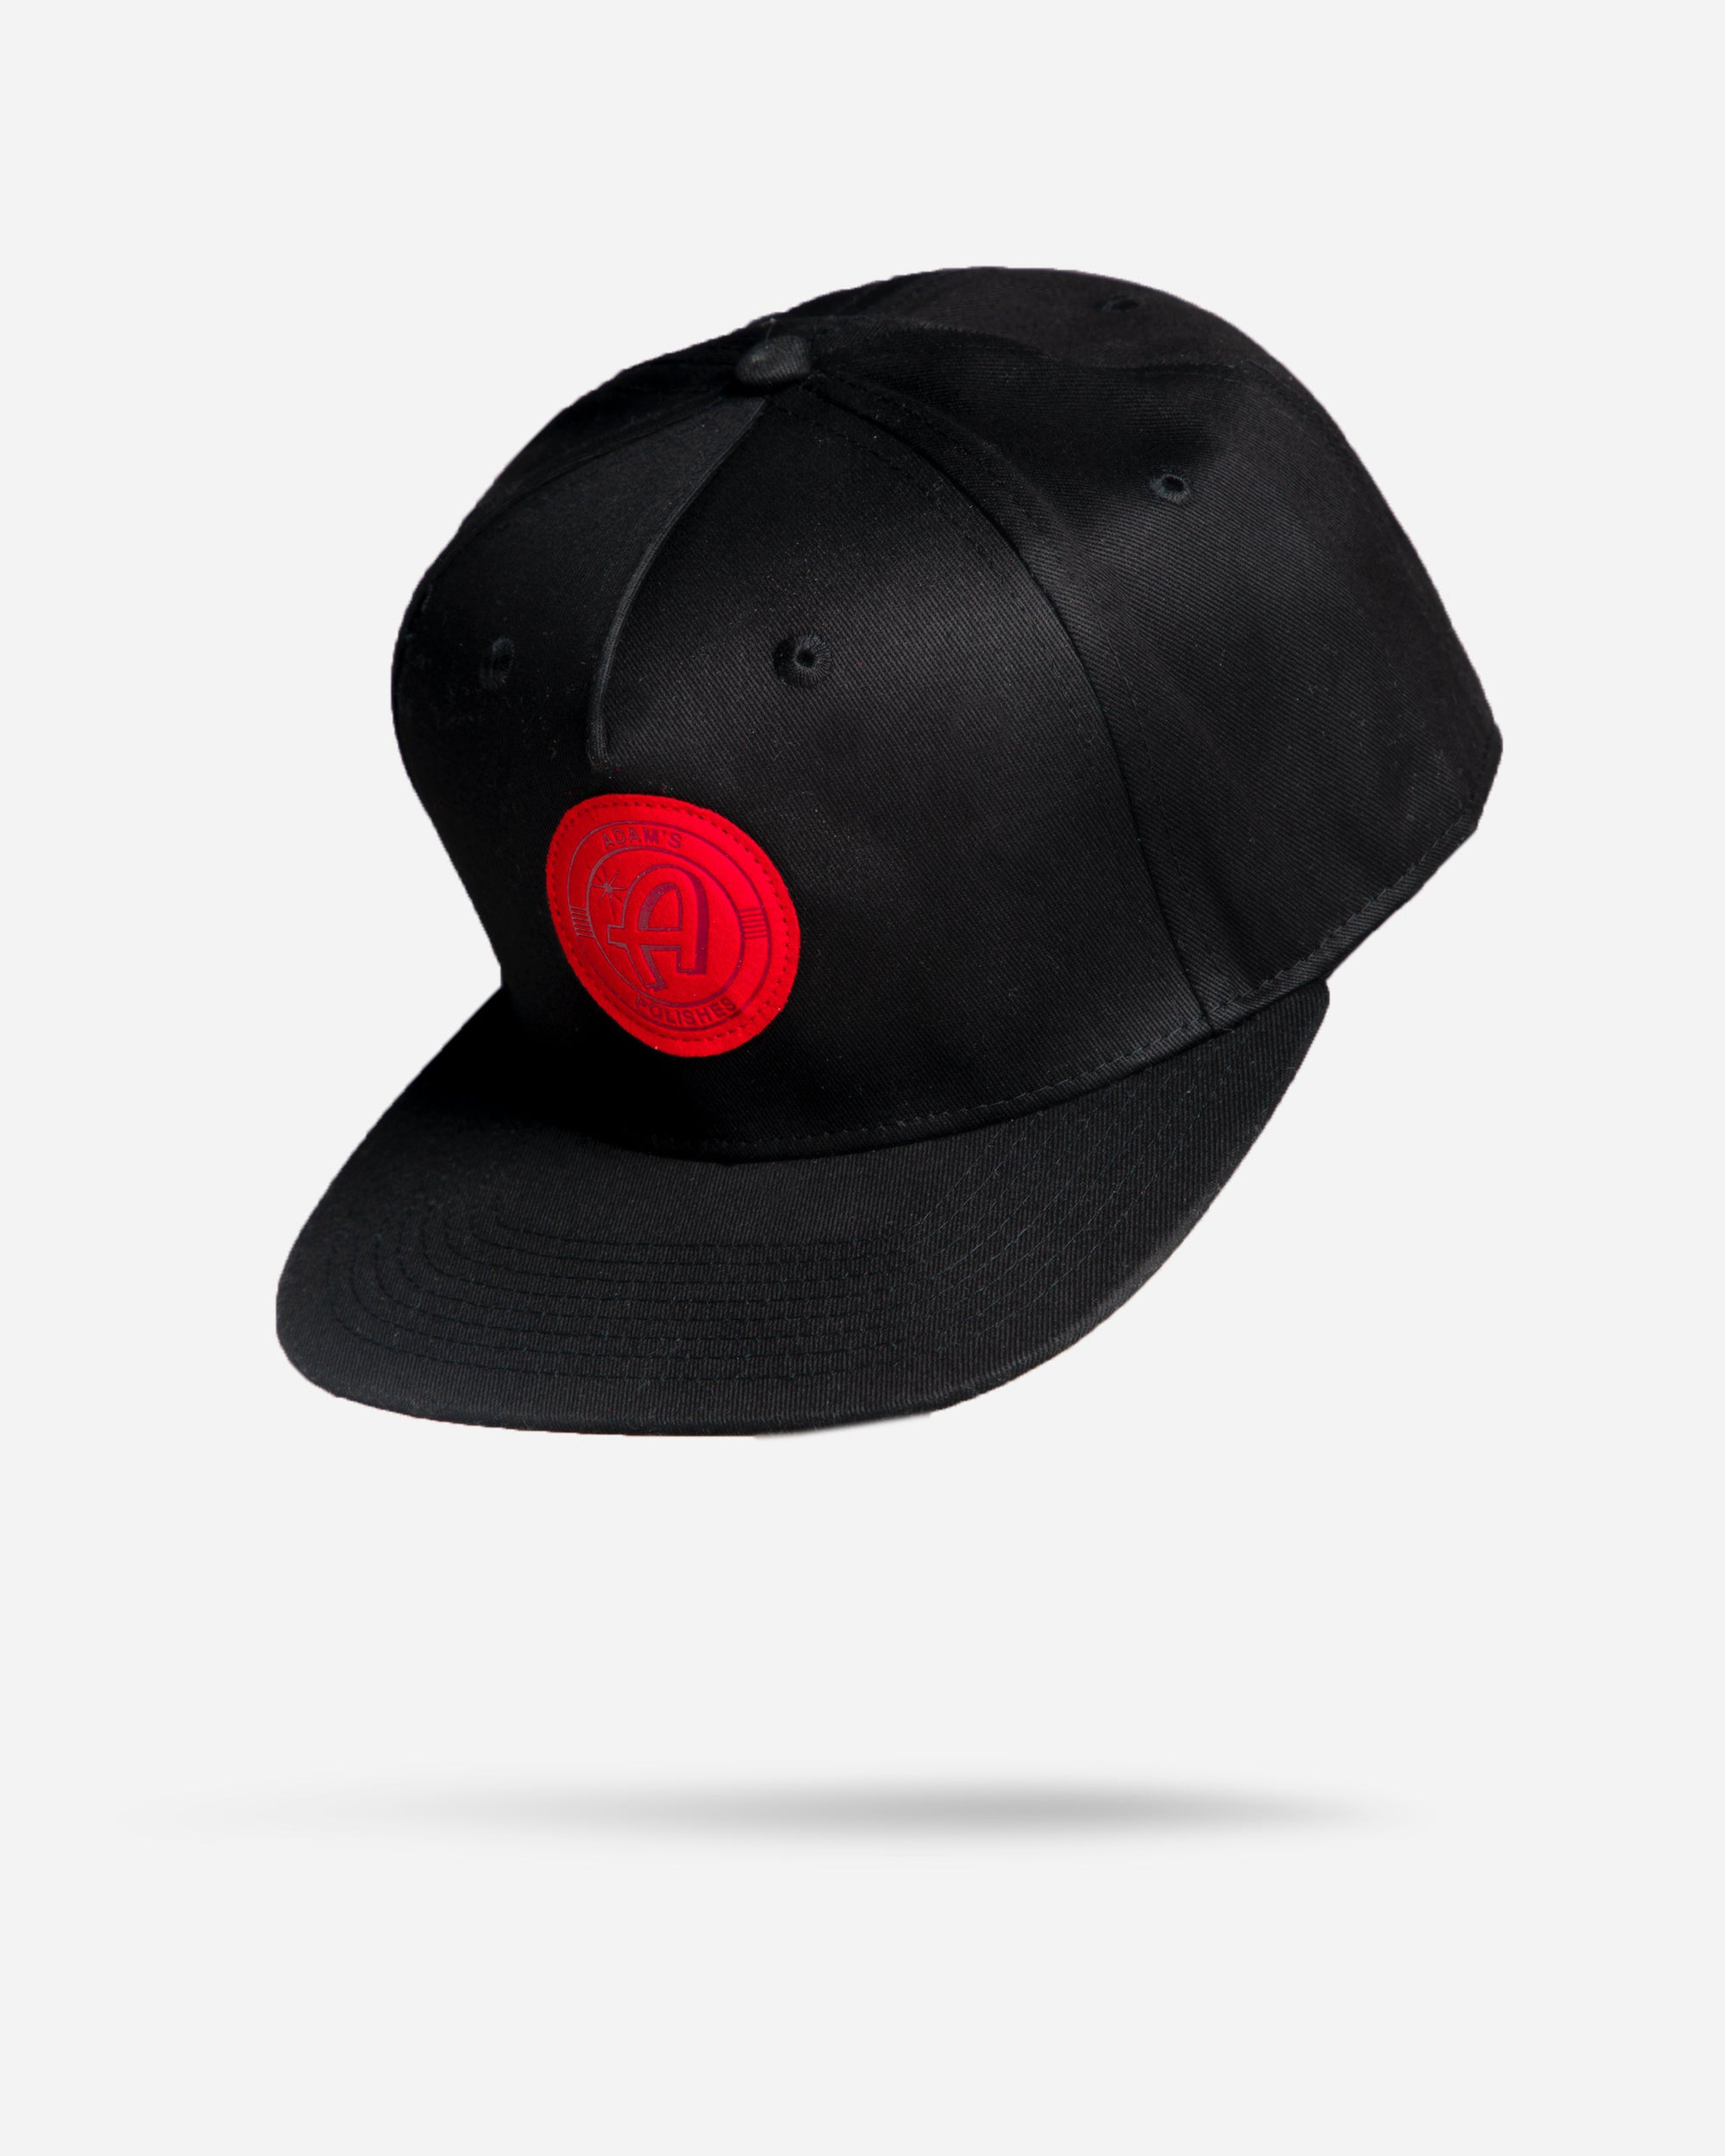 Adam's Black Hat - Red Patch